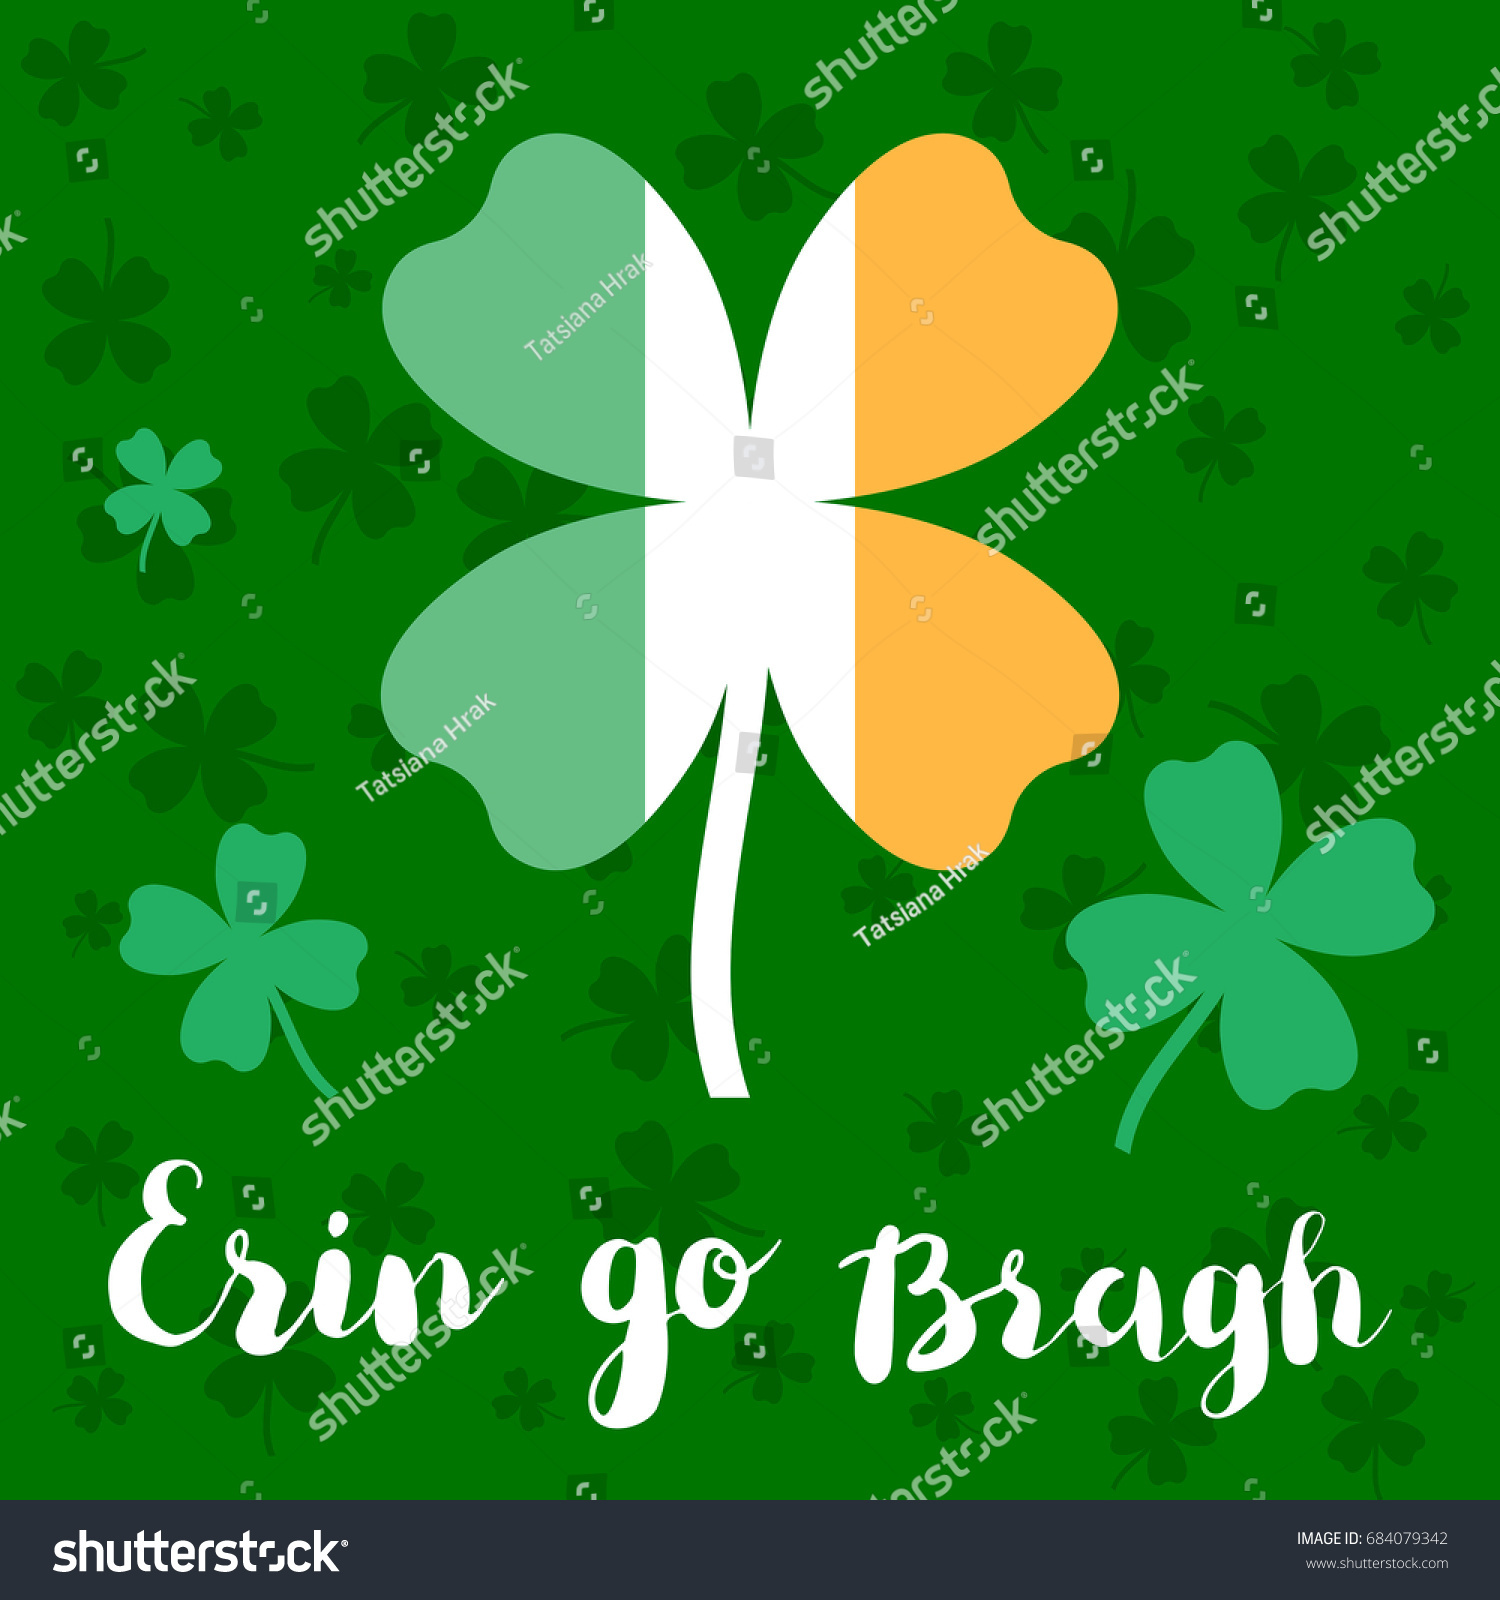 Erin go bragh lettering typography big stock vector hd royalty free erin go bragh lettering typography with big four leaf clover in colors of ireland national m4hsunfo